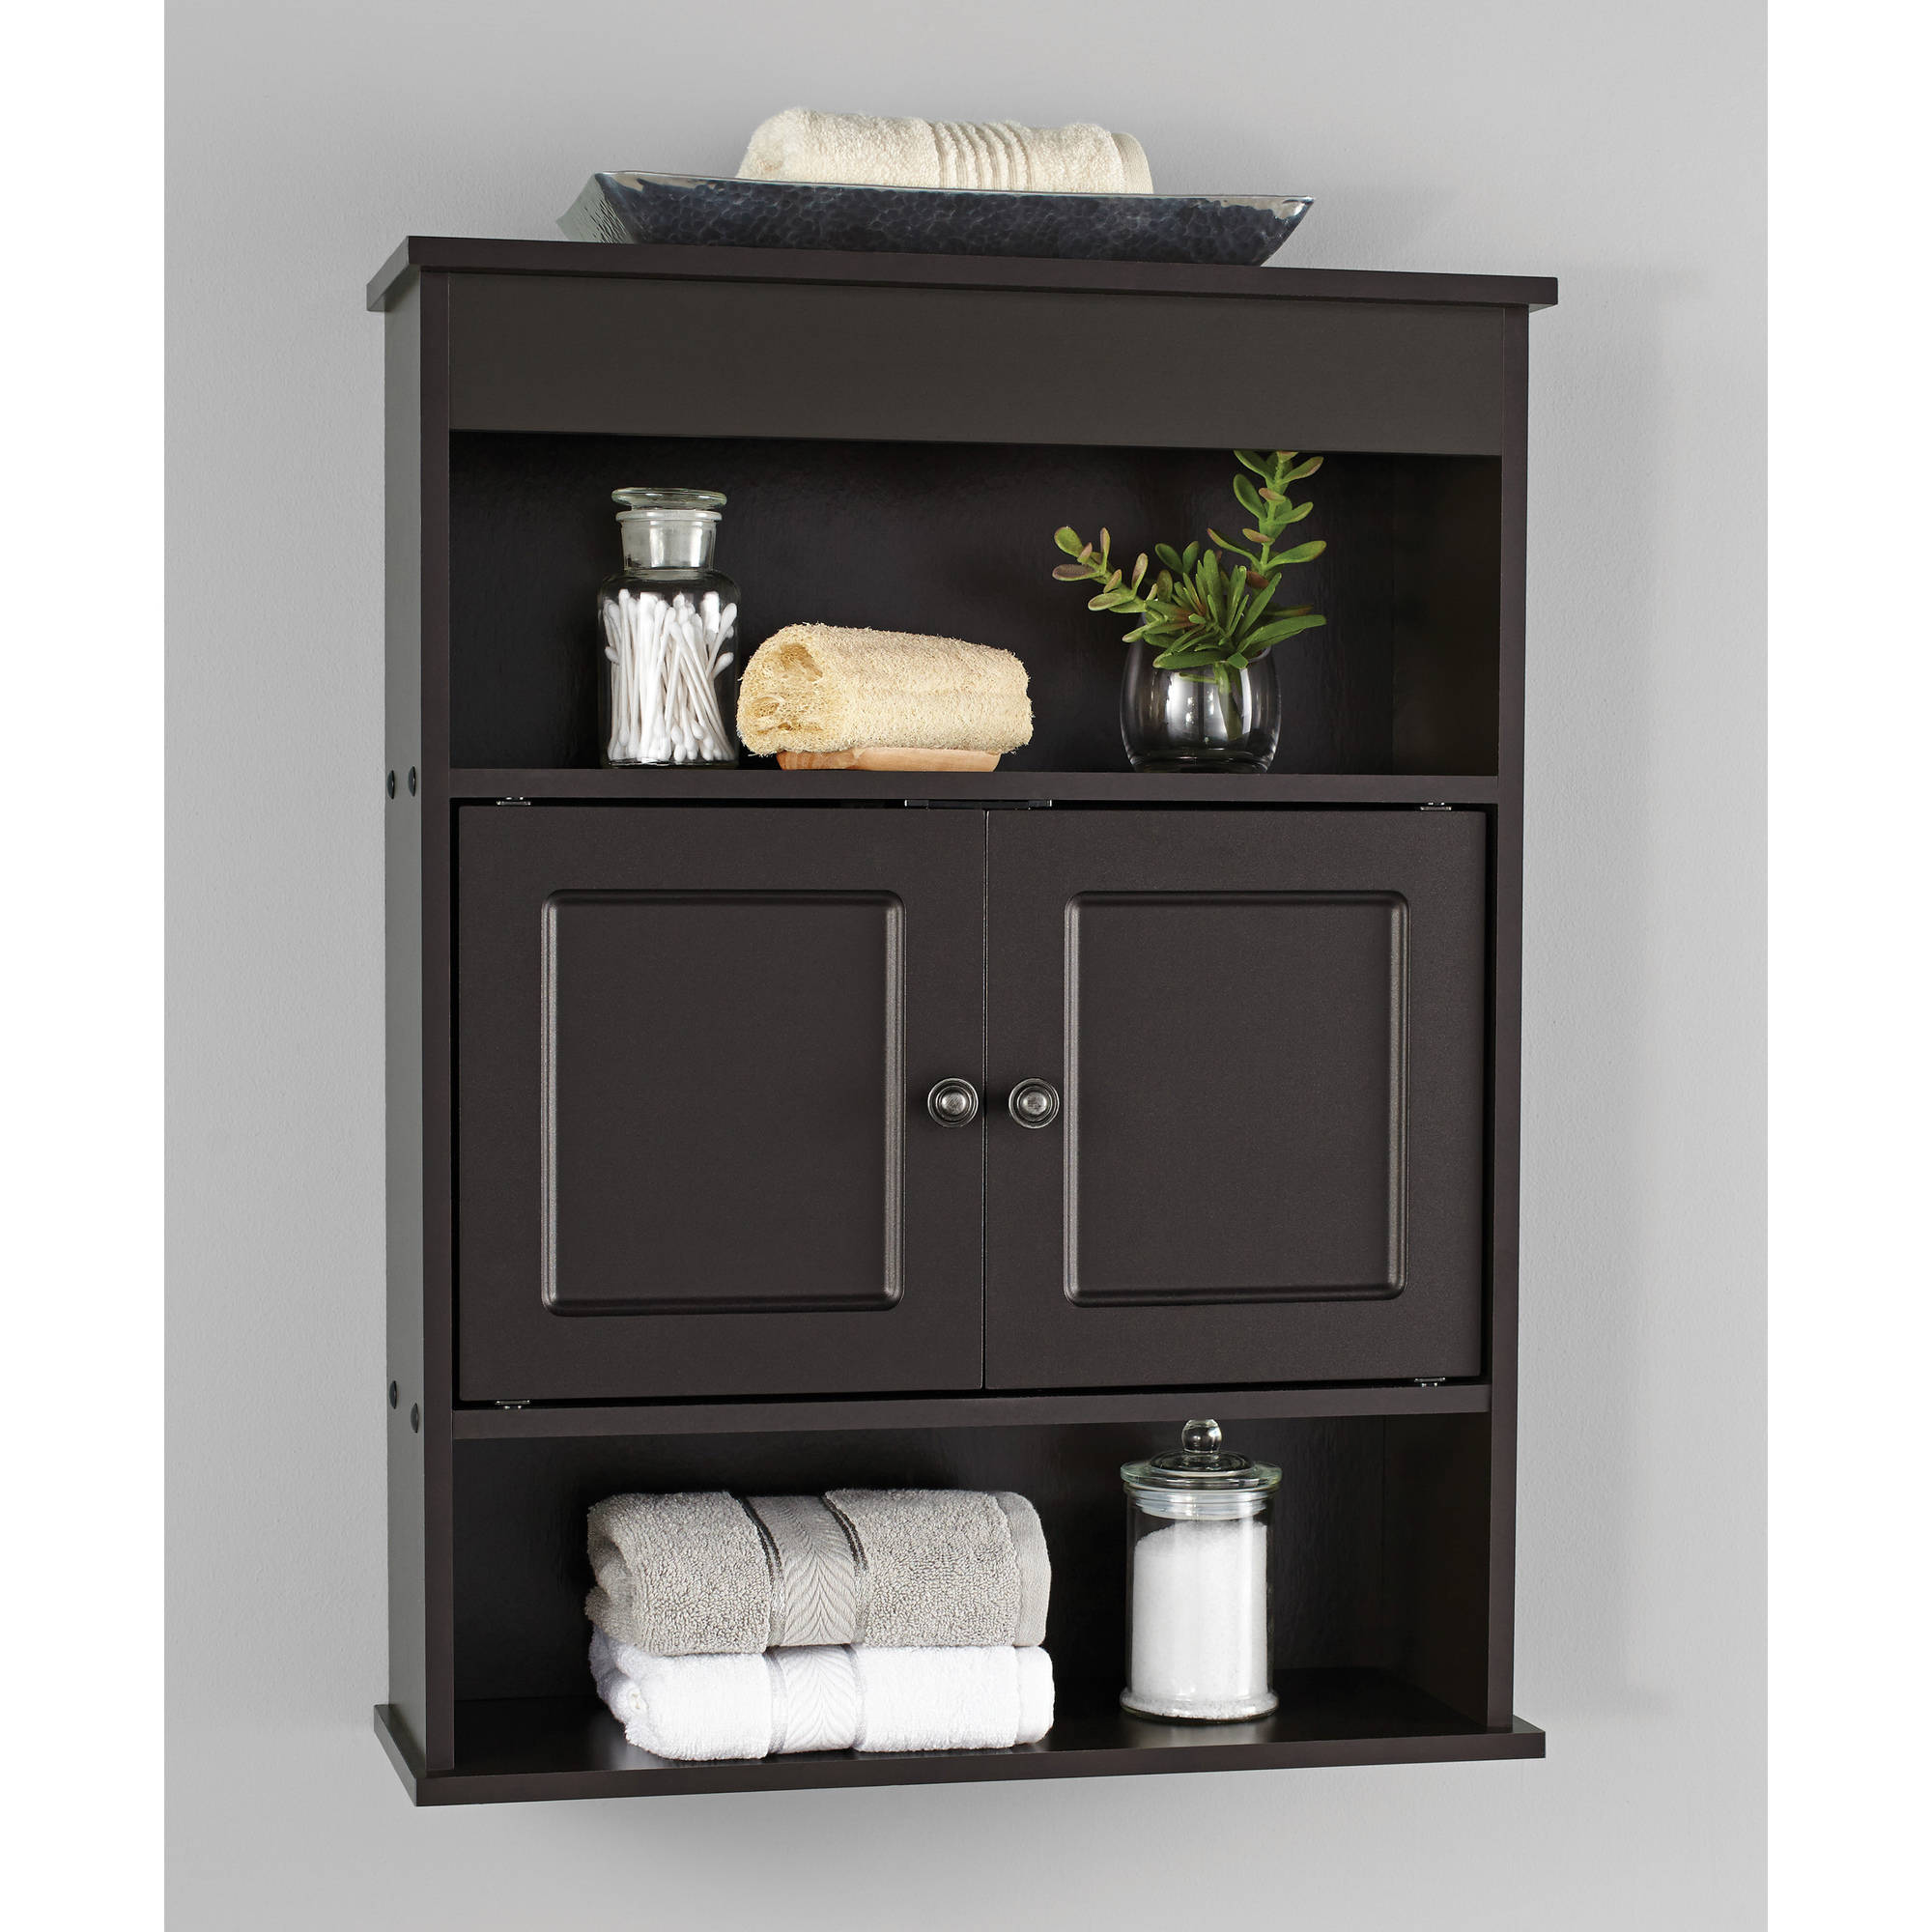 Chapter Bathroom Wall Cabinet Espresso Walmart